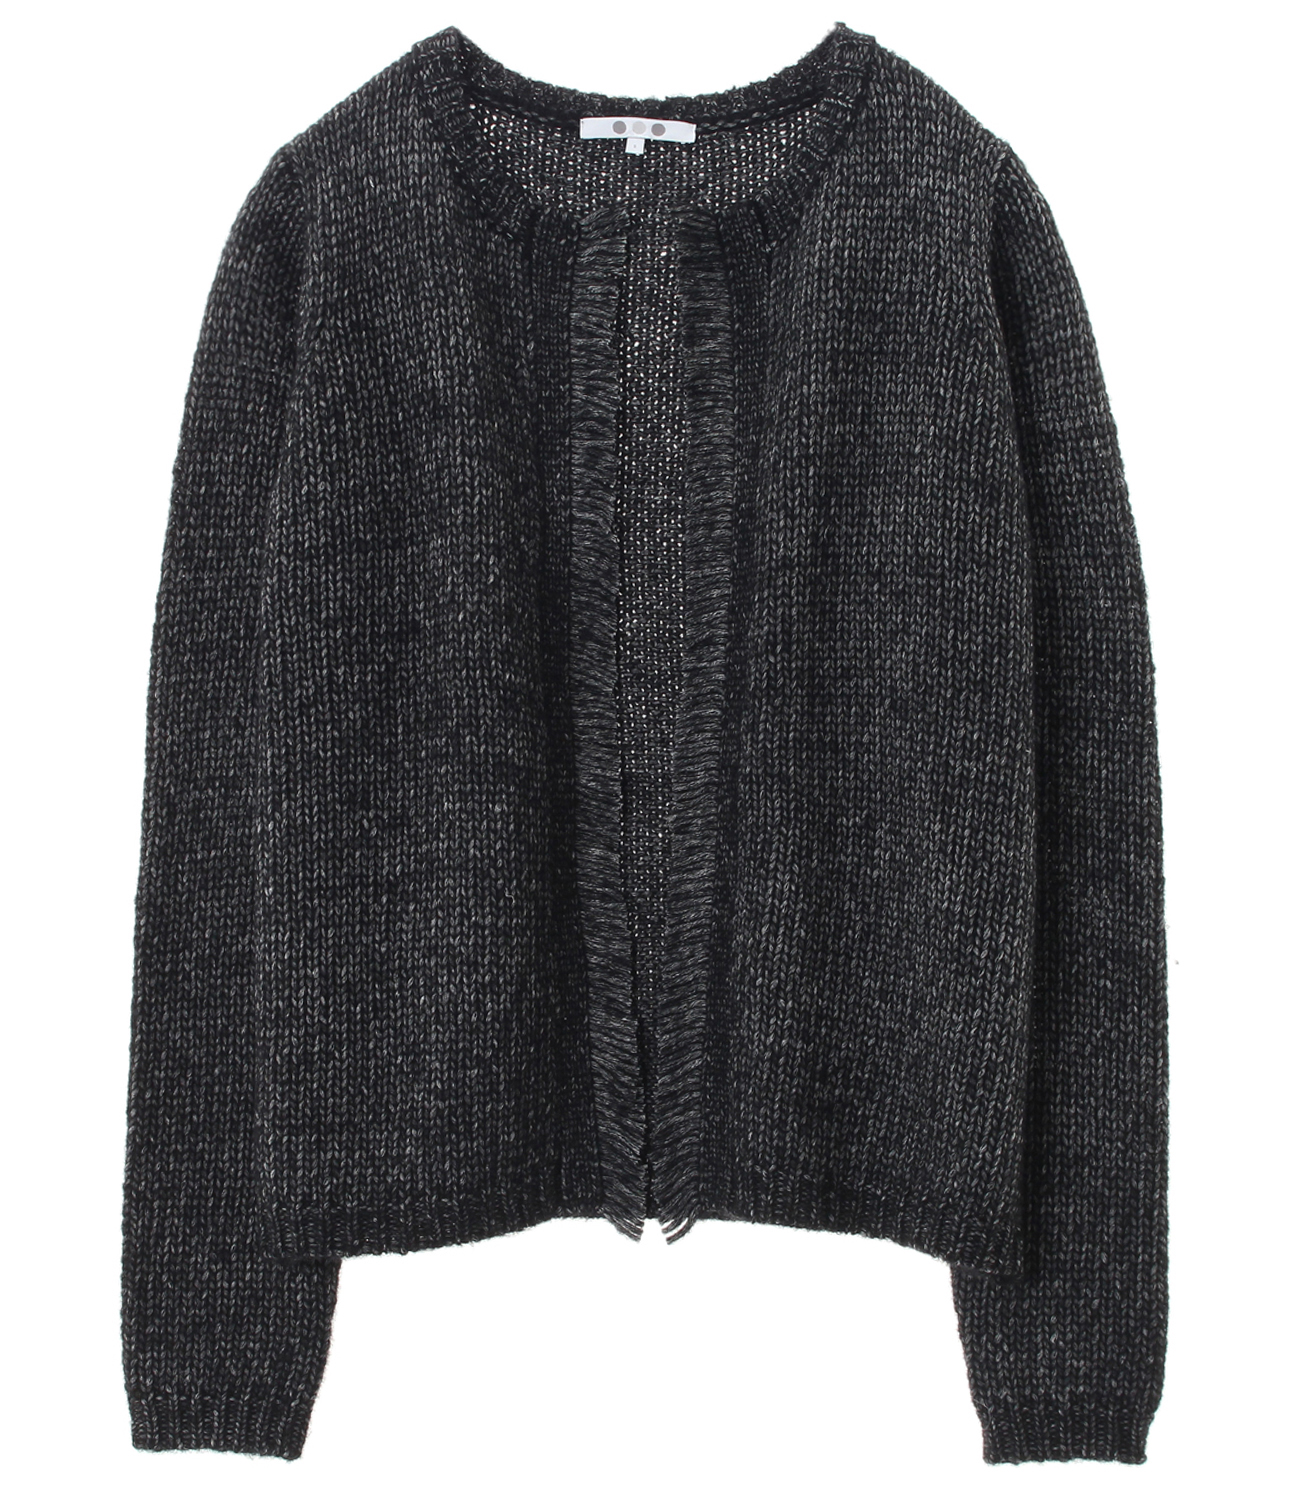 tweedy sweater l/s cardigan 詳細画像 black 1